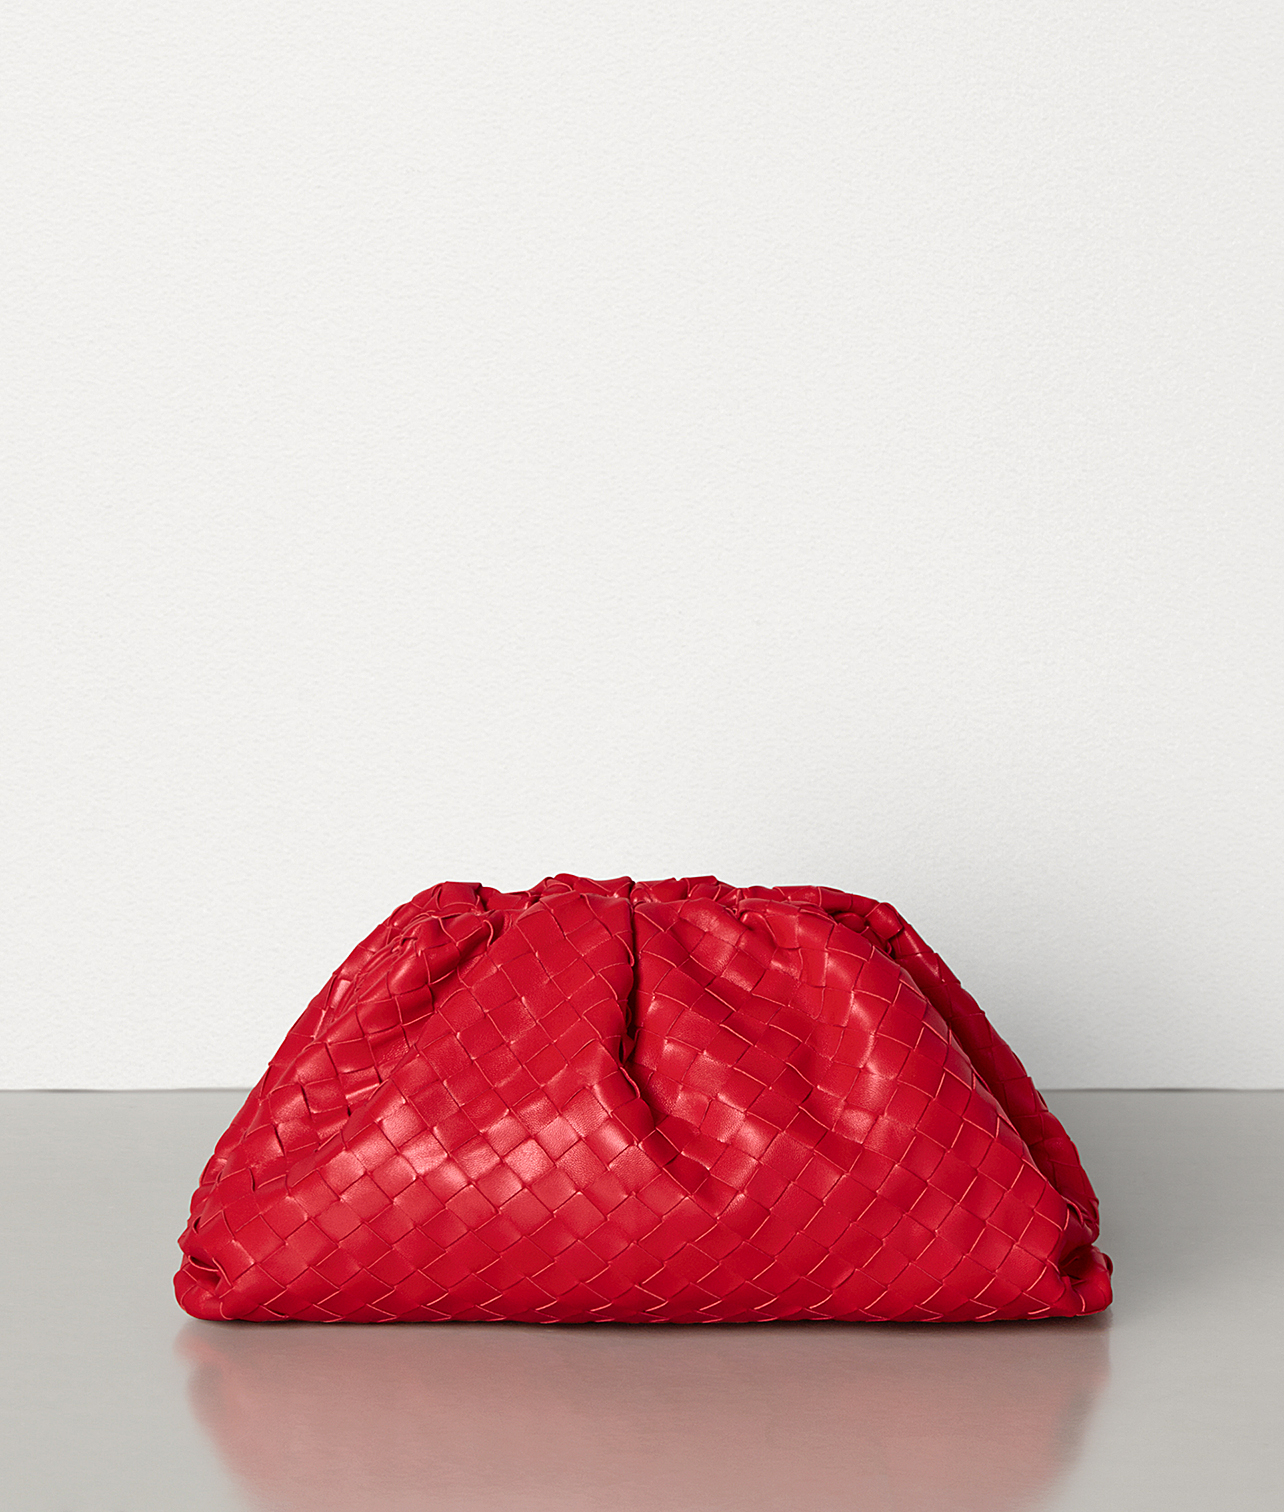 Bottega Veneta® - THE POUCH IN INTRECCIATO NAPPA